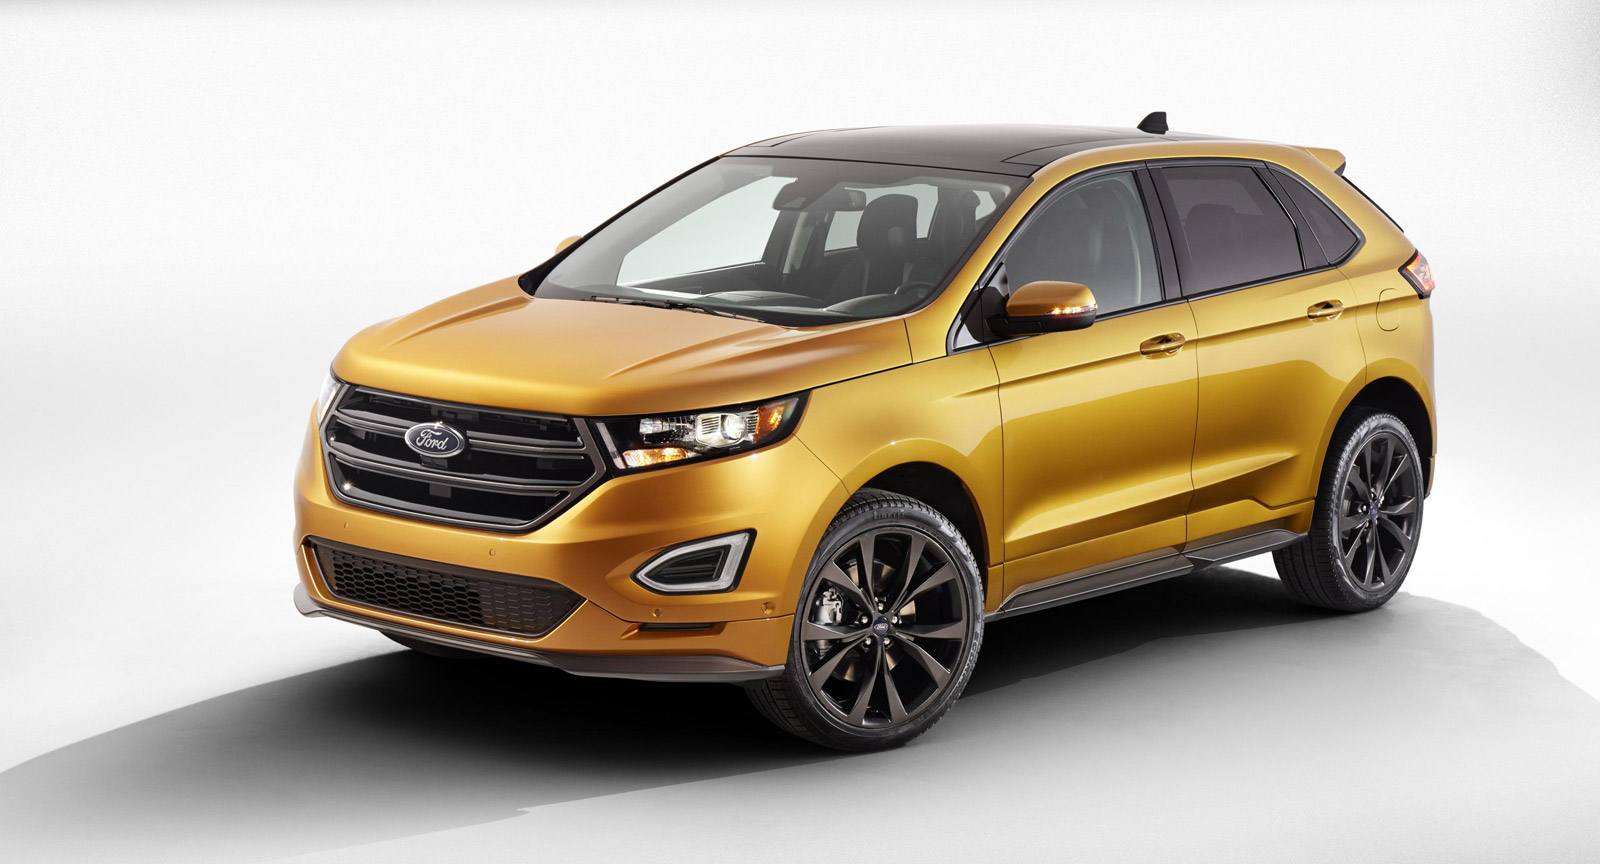 Ford Edge Sales Stopped To Fix Water Leak Owners Asked To Come In For